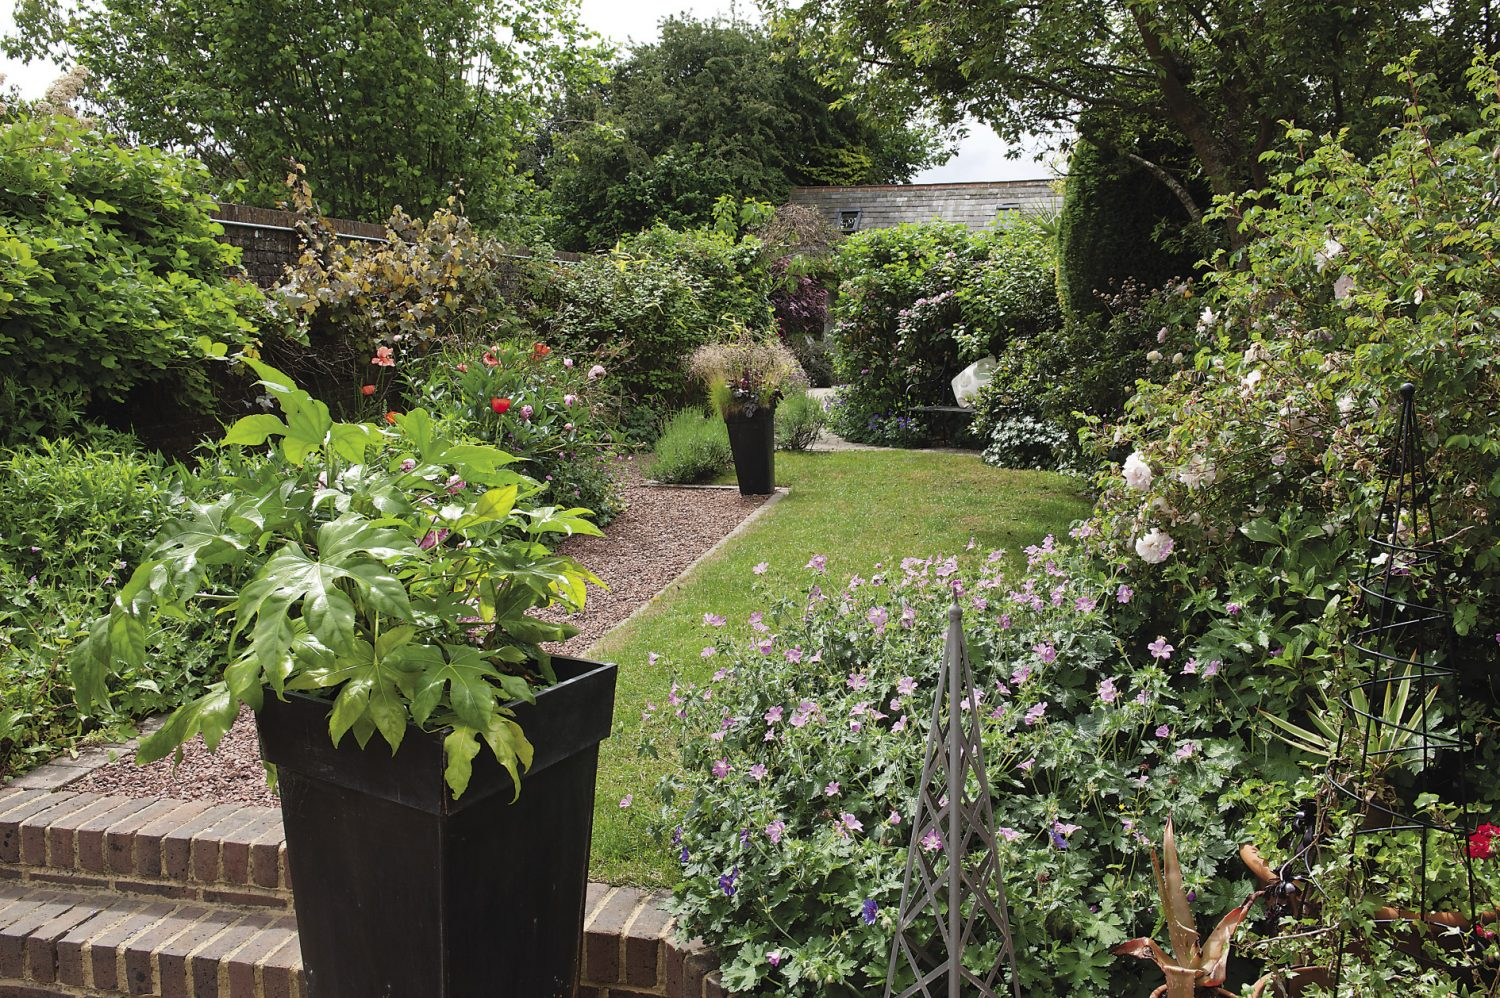 The garden faces south and is divided into three sections, cleverly adding interest to what is essentially quite a long and narrow plot